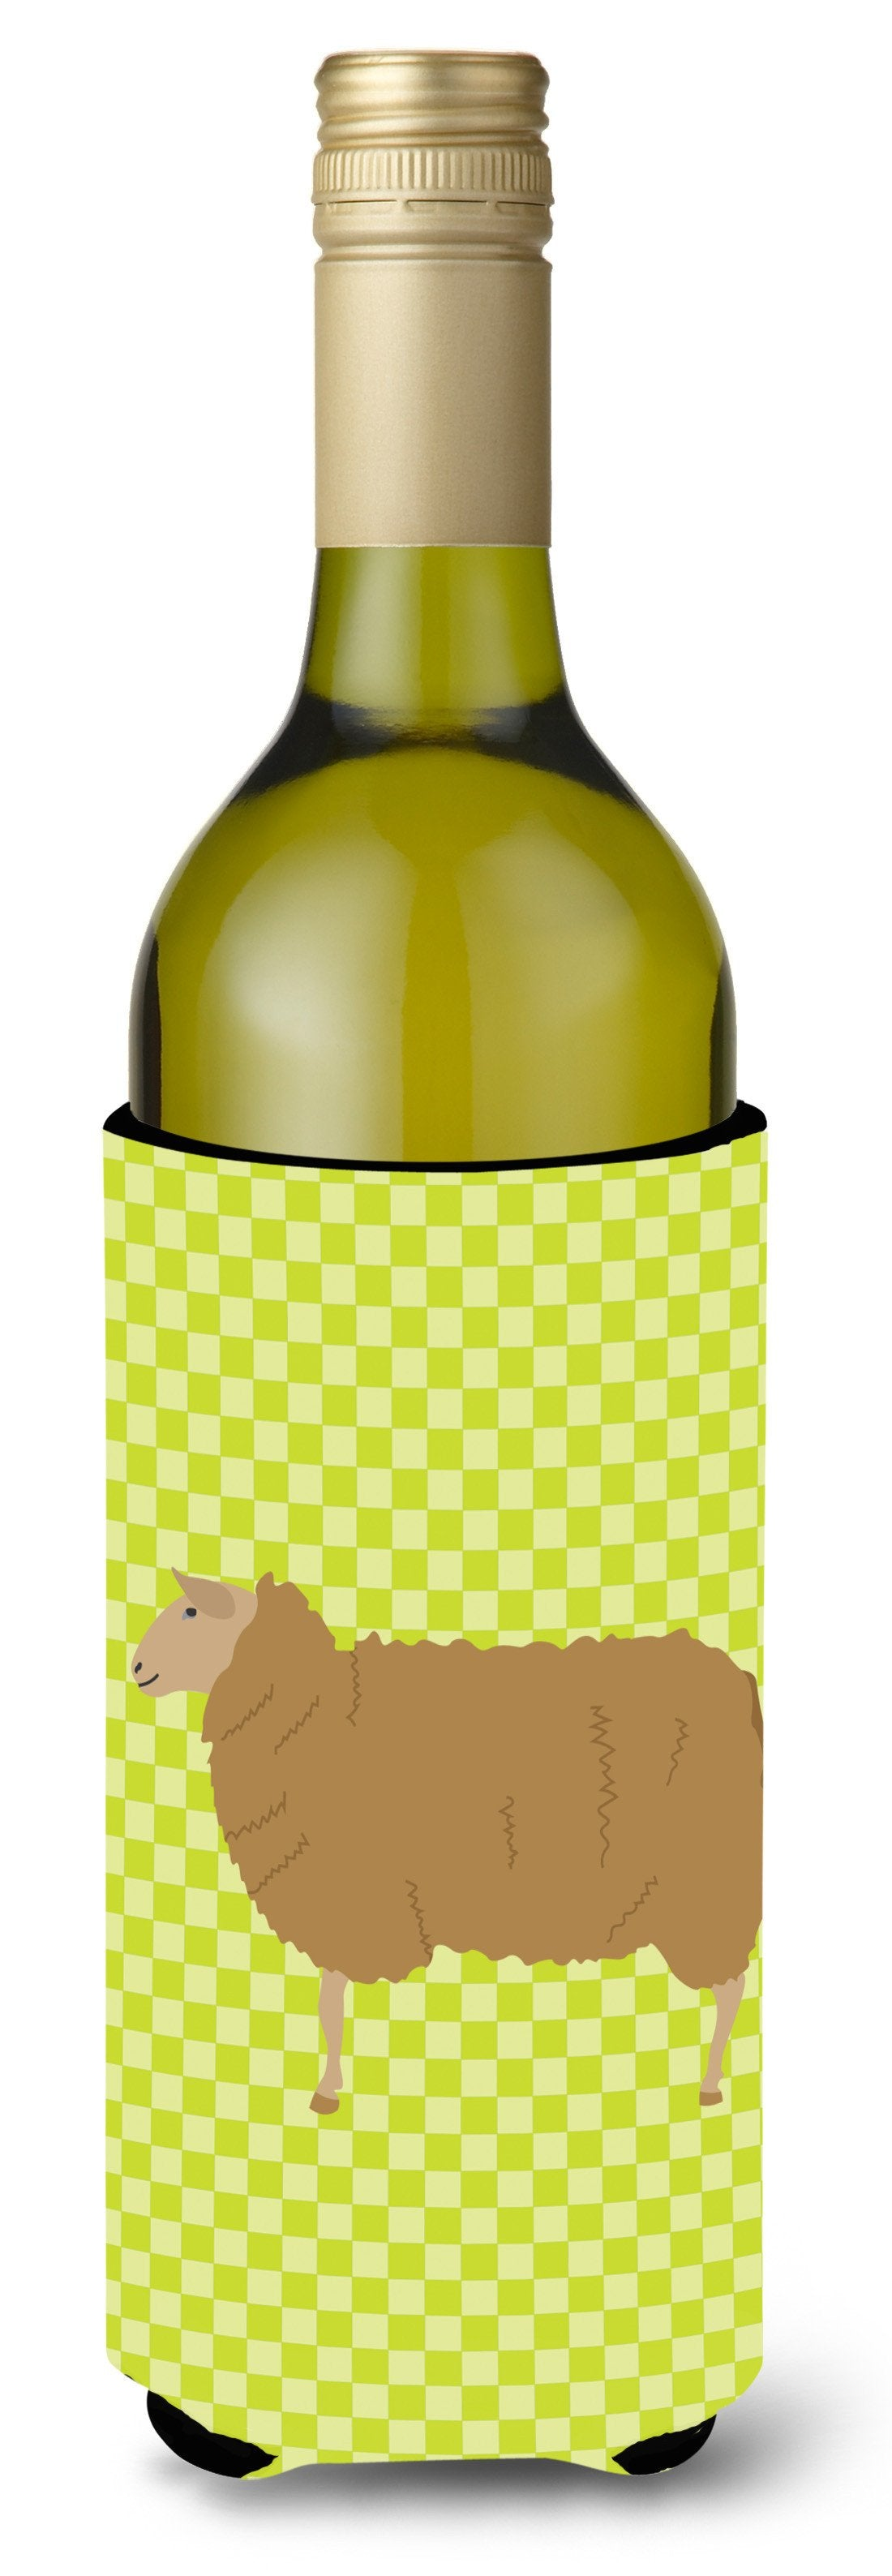 East Friesian Sheep Green Wine Bottle Beverge Insulator Hugger BB7803LITERK by Caroline's Treasures